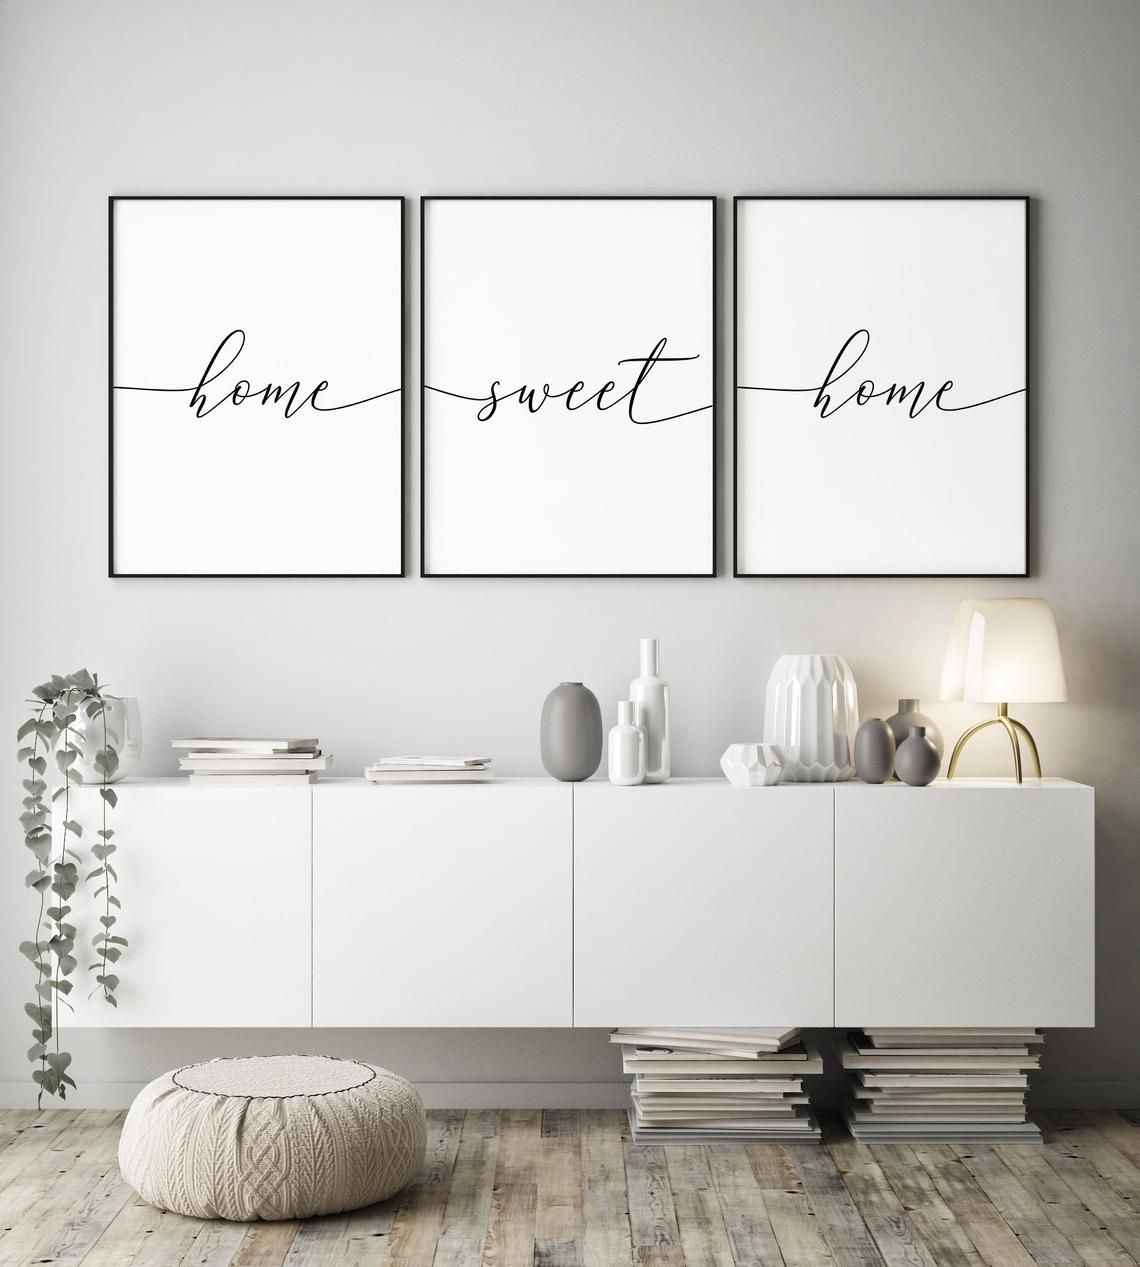 Set of 3 Prints,Home sweet home Printable,Living Room wall Art,Scandinavian posters,Home Decor,Bedroom Sign,Minimalist Wall Art,Family Quote